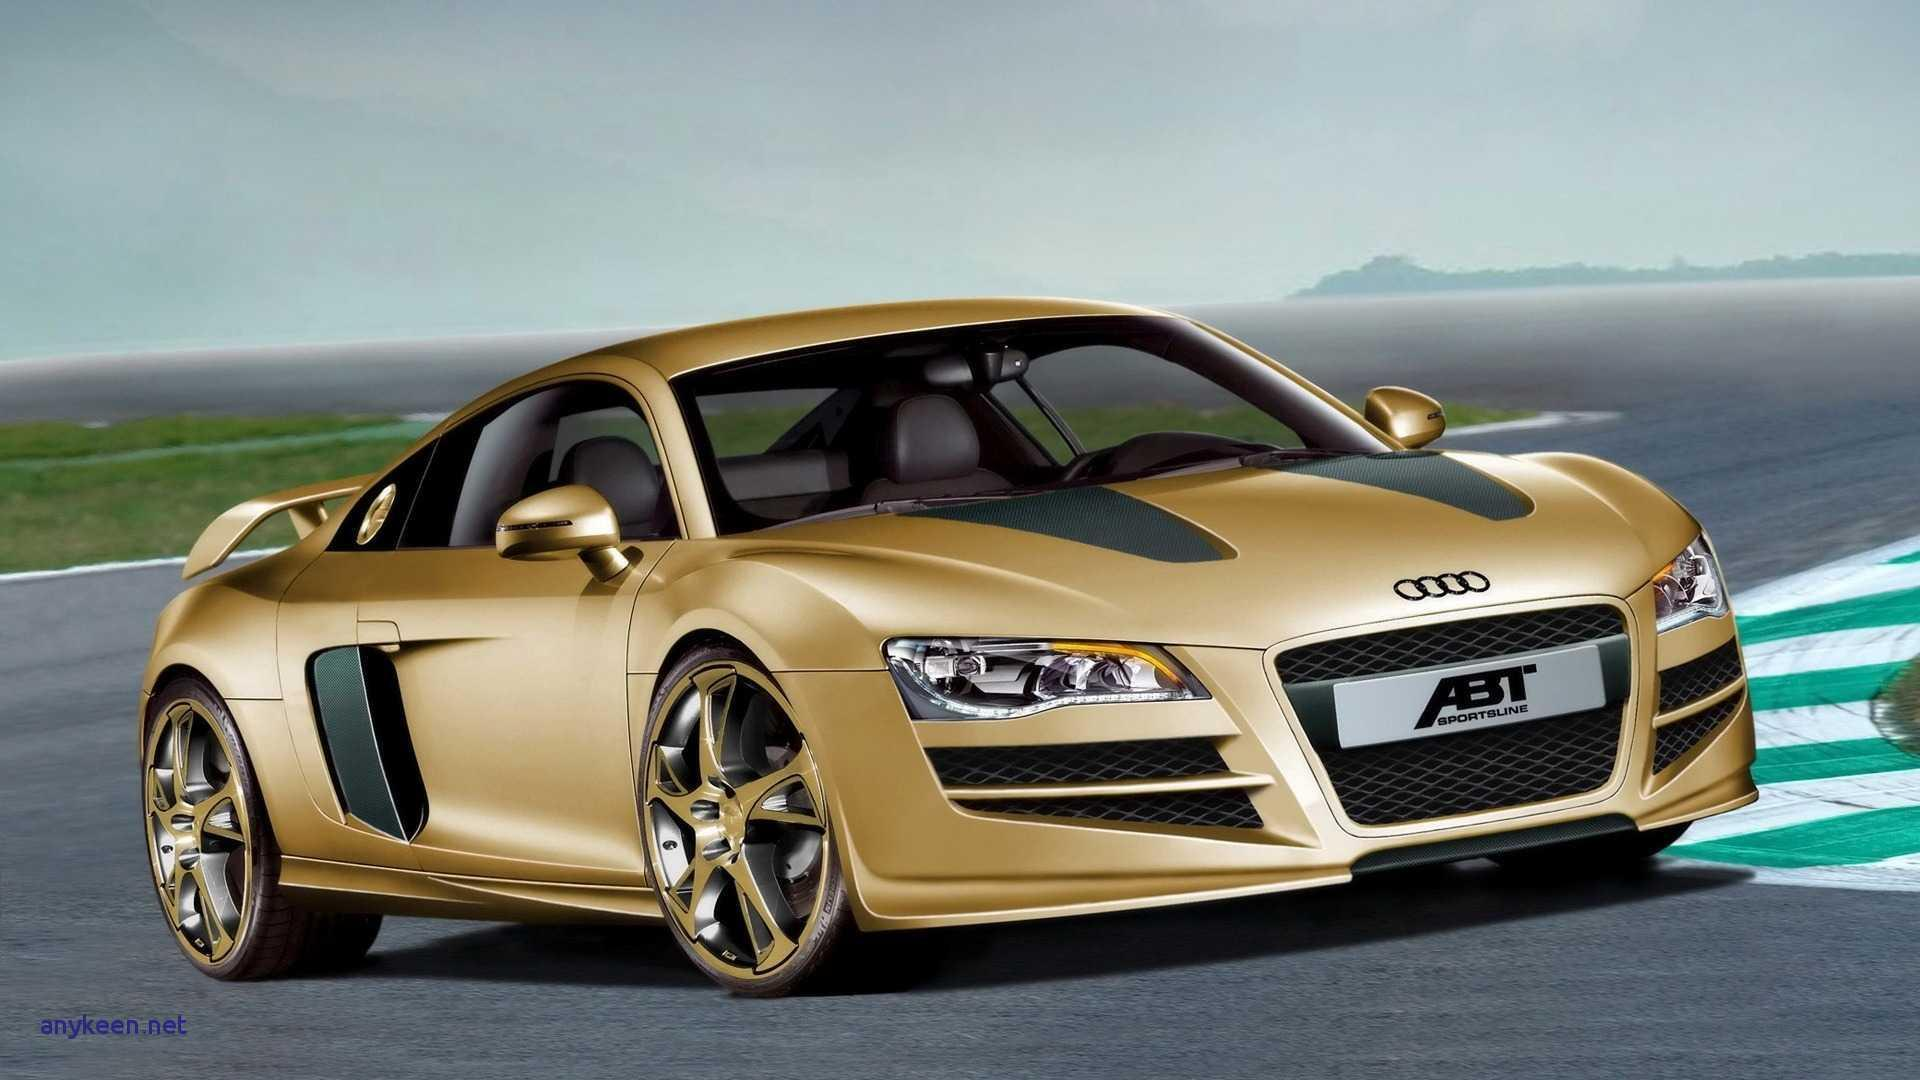 Audi Car Wallpapers Hd For Android Apk Download